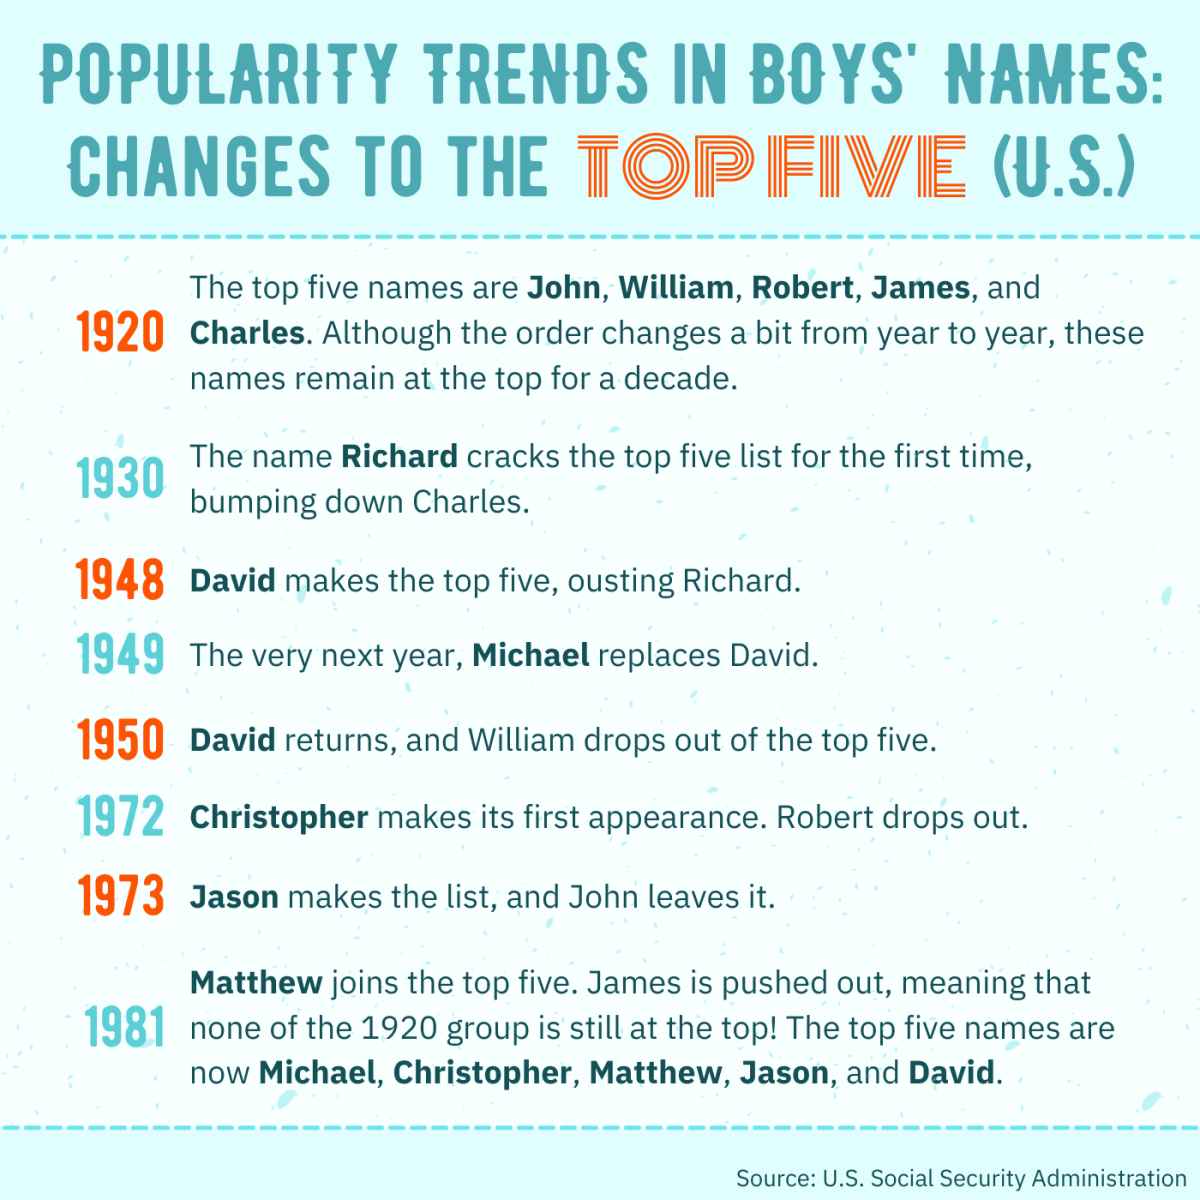 Take a look at how the top five boys' names in the U.S. changed from the 1920s to the 1980s!